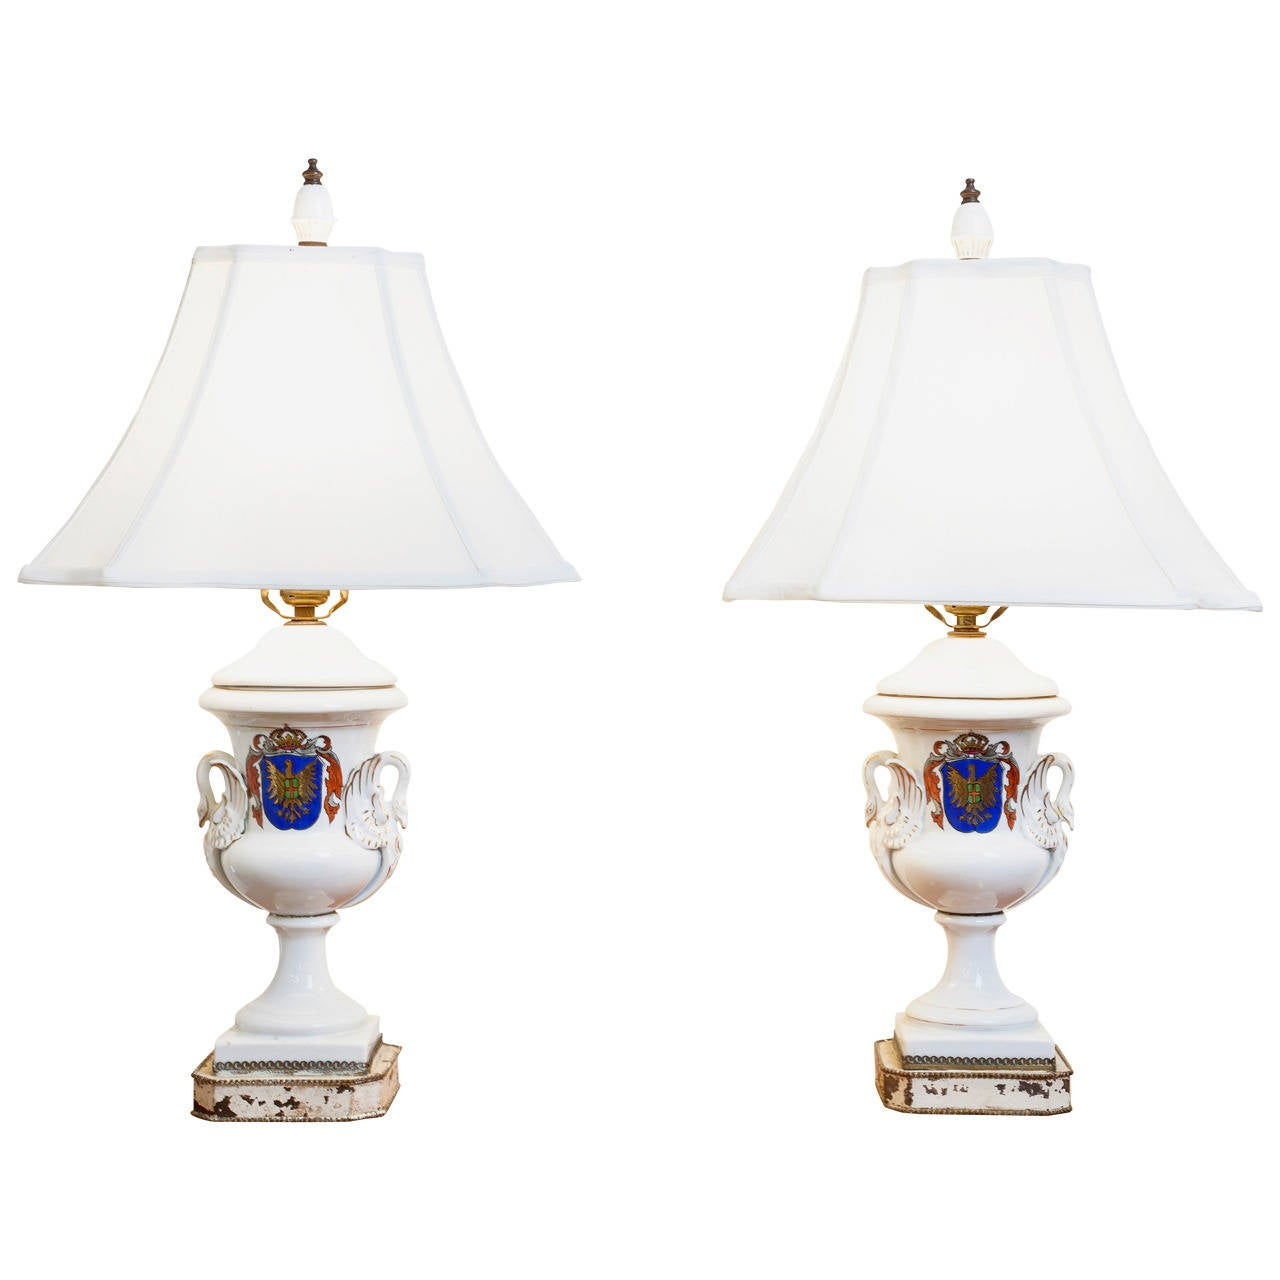 Pair of Old Paris Armorial Urn Lamps, 19th Century France